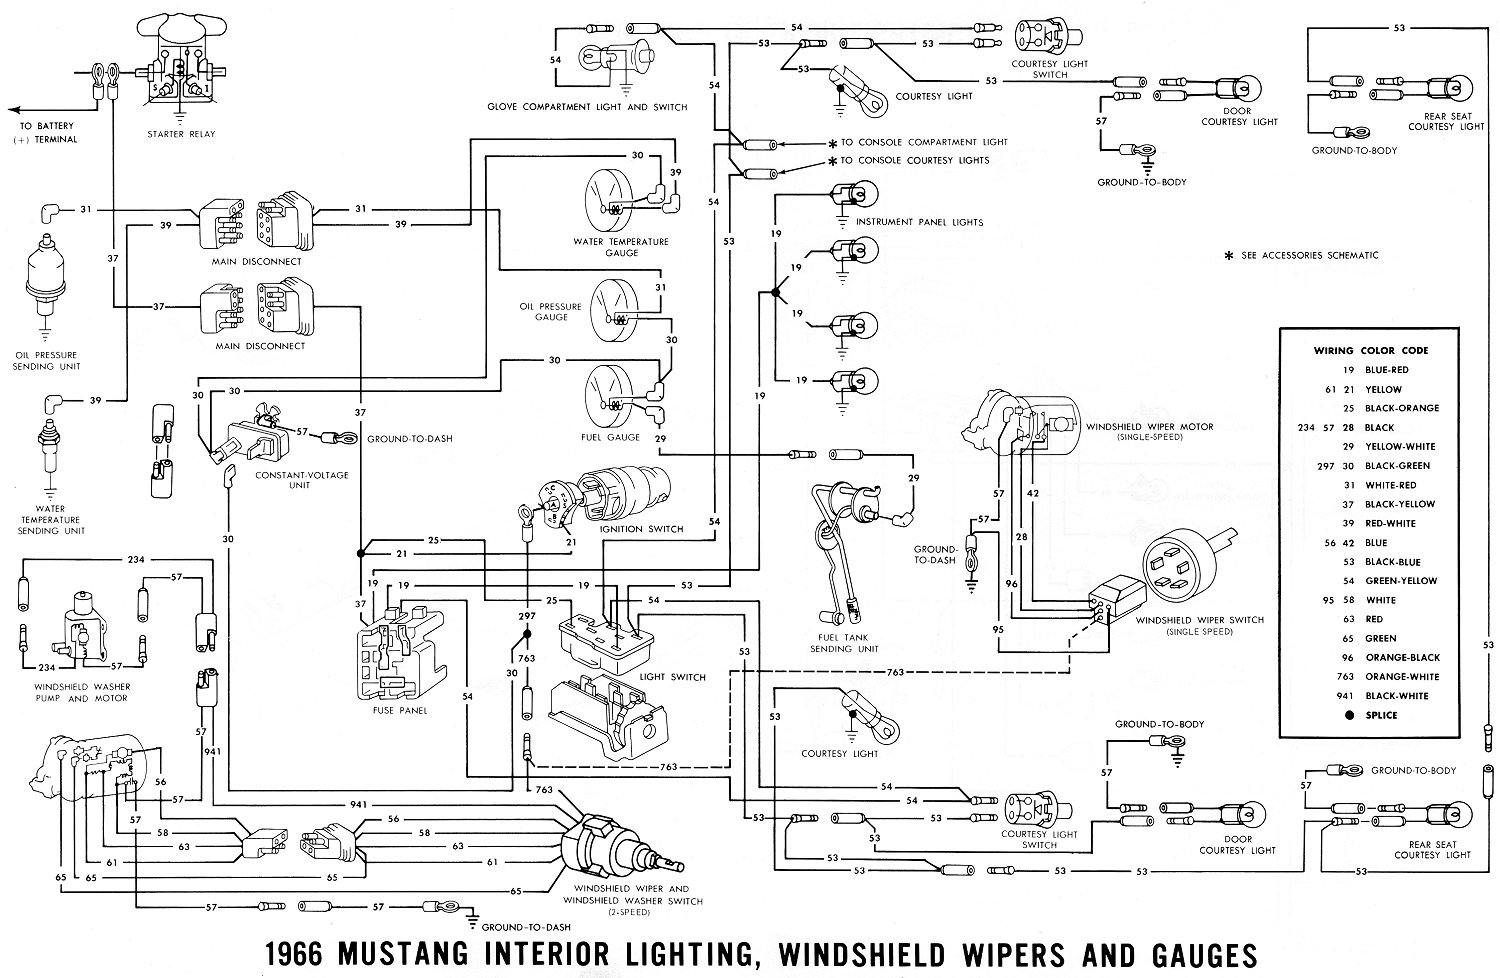 66inter1 1966 mustang wiring diagrams average joe restoration 1990 Mustang Custom Gauges at crackthecode.co